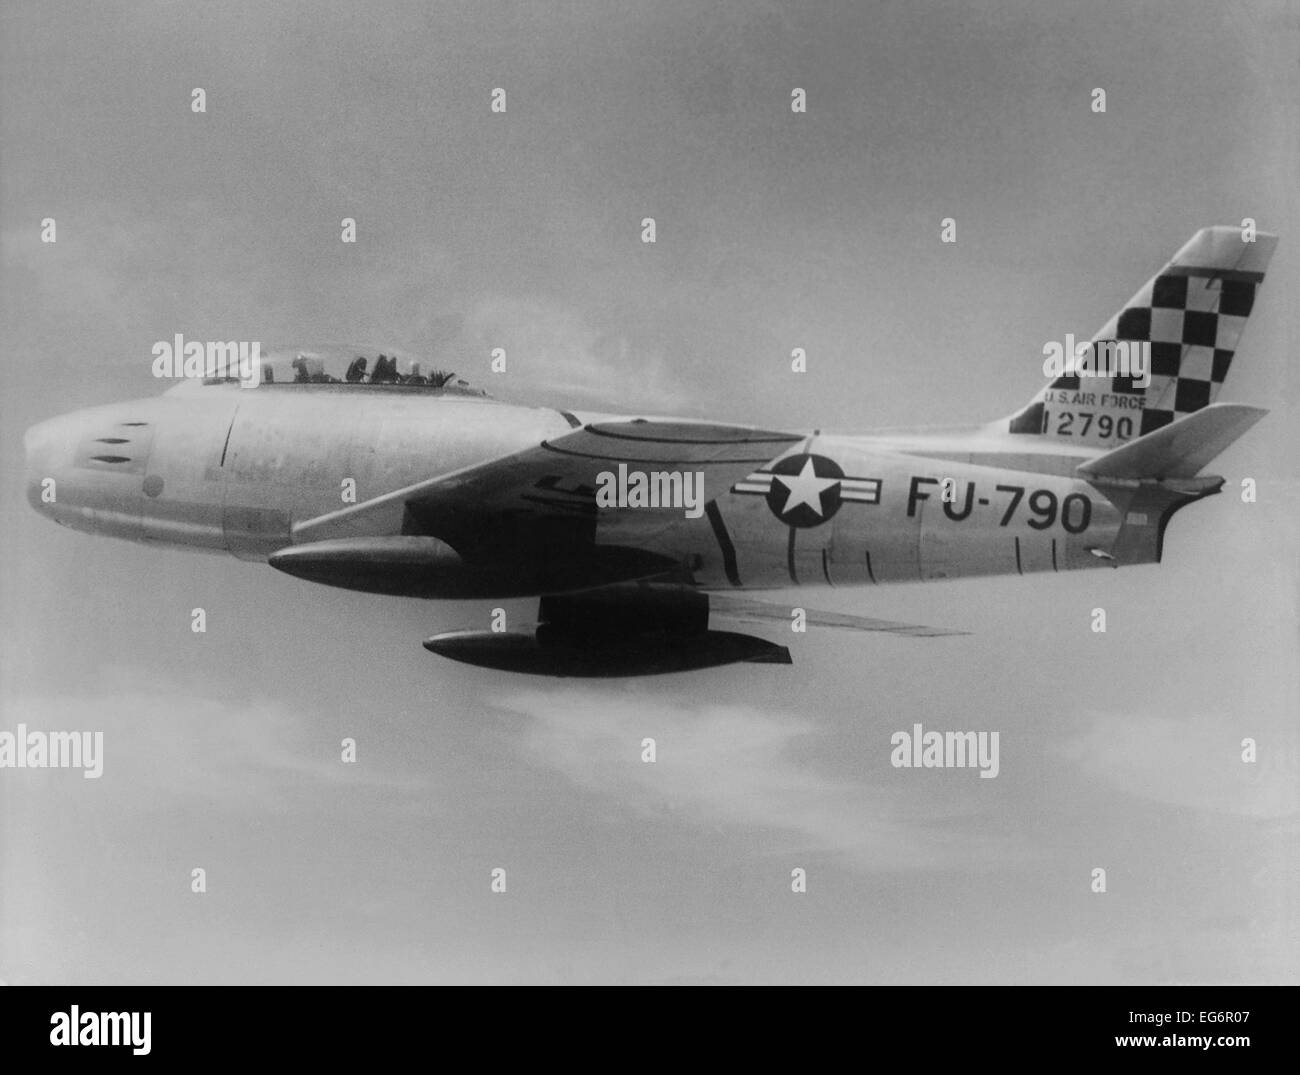 F-86 Sabre Jet was the first U.S. jet fighter to have swept wings. This one is headed toward 'MIG Alley' - Stock Image